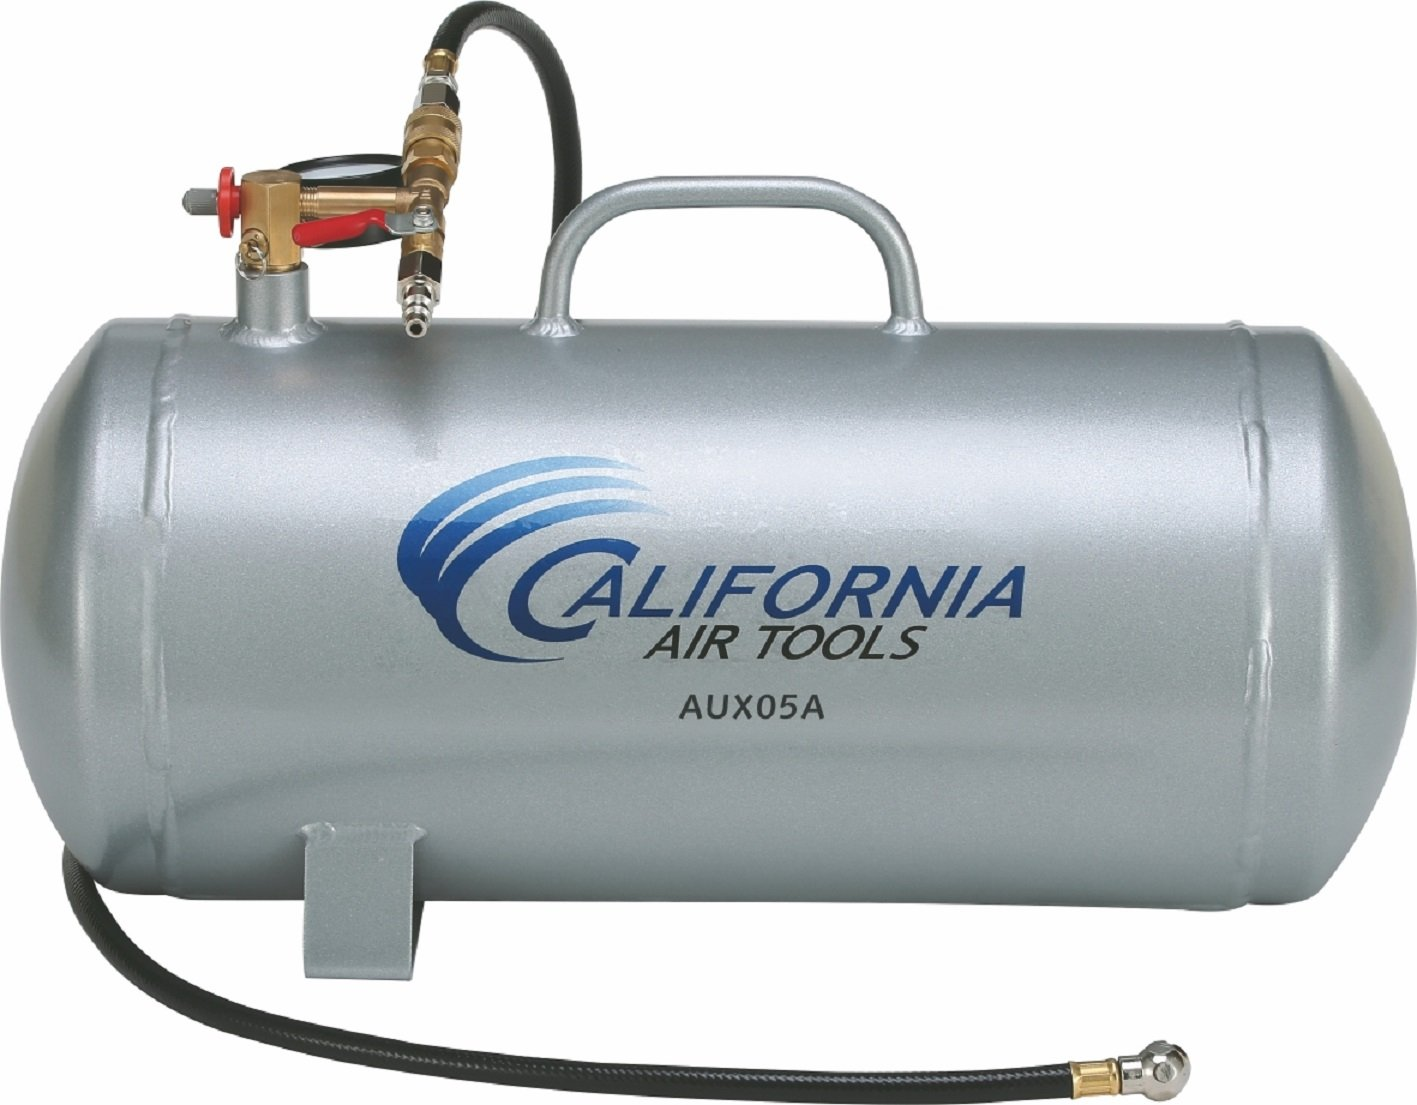 California Air Tools AUX05 Portable Air Tank, 5 gallon